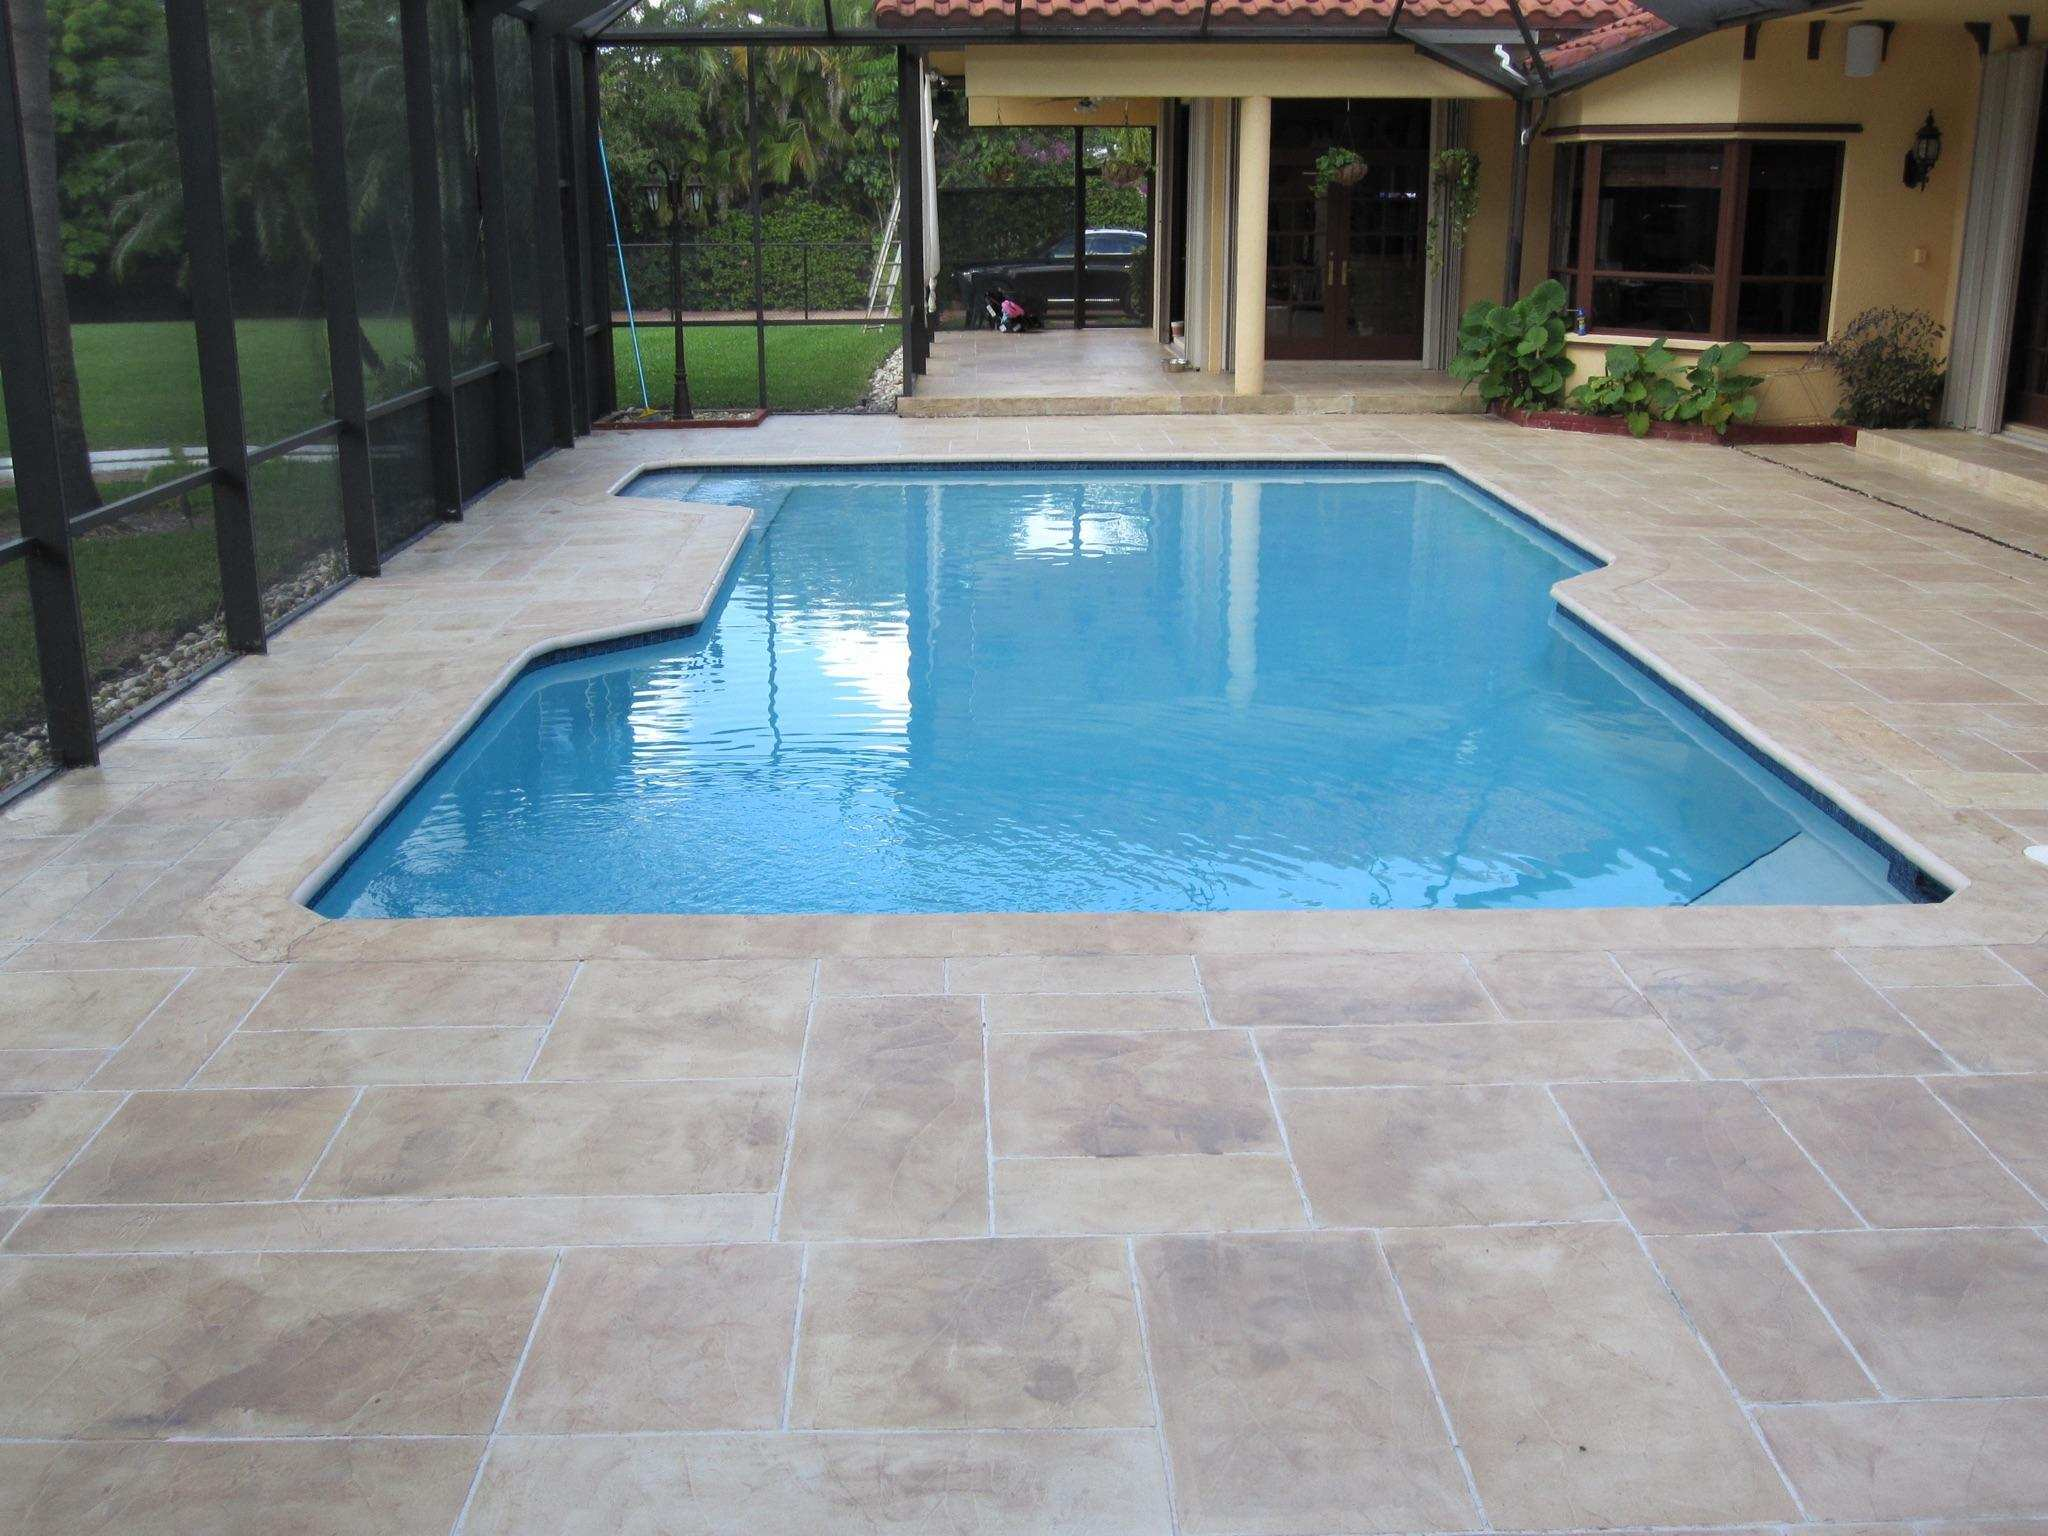 Miami Fl Representing The Stamped Concrete For Pool Decks